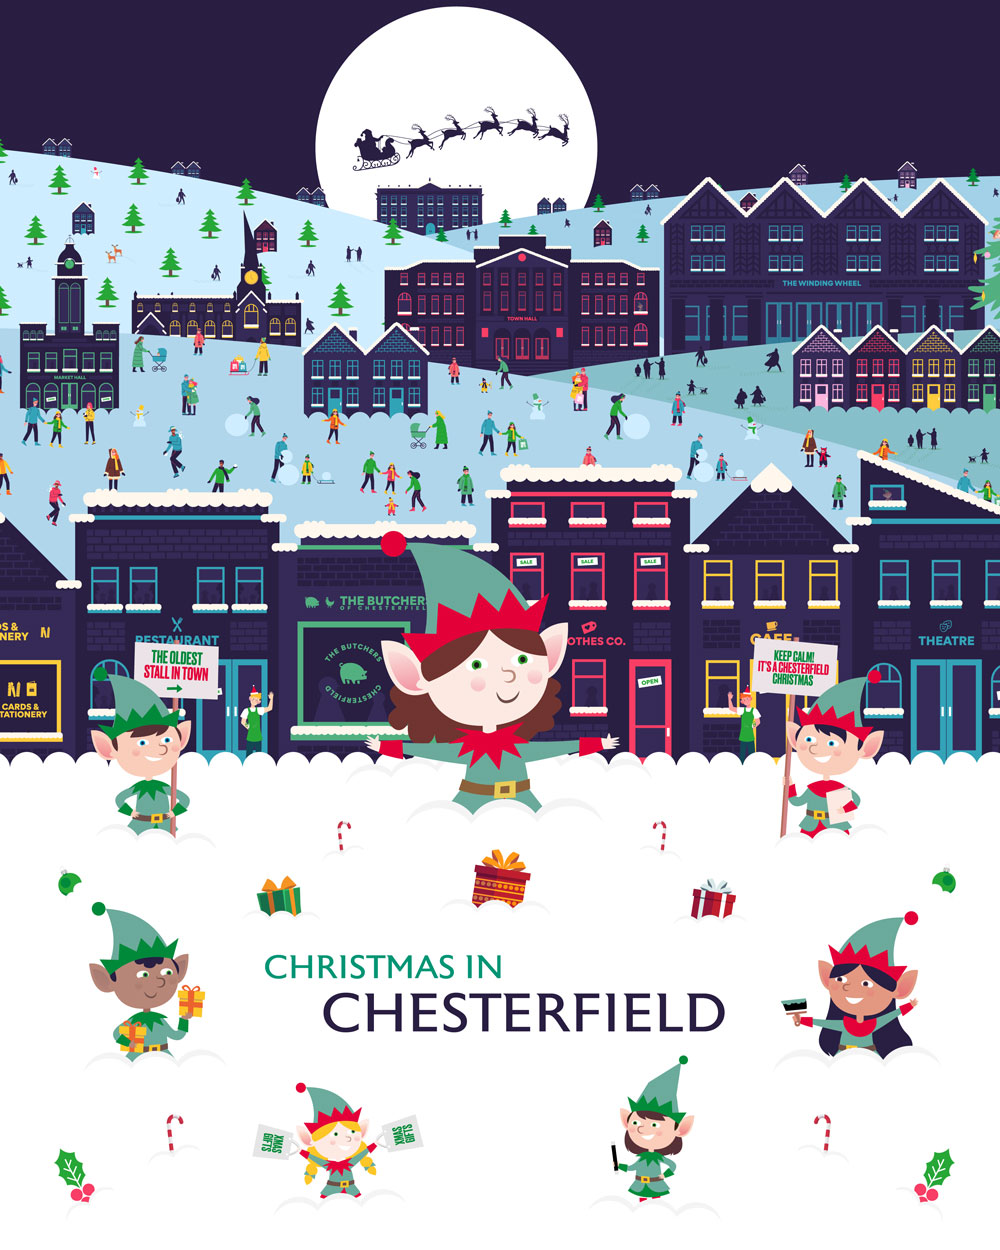 Chesterfield puts the magic back into Christmas